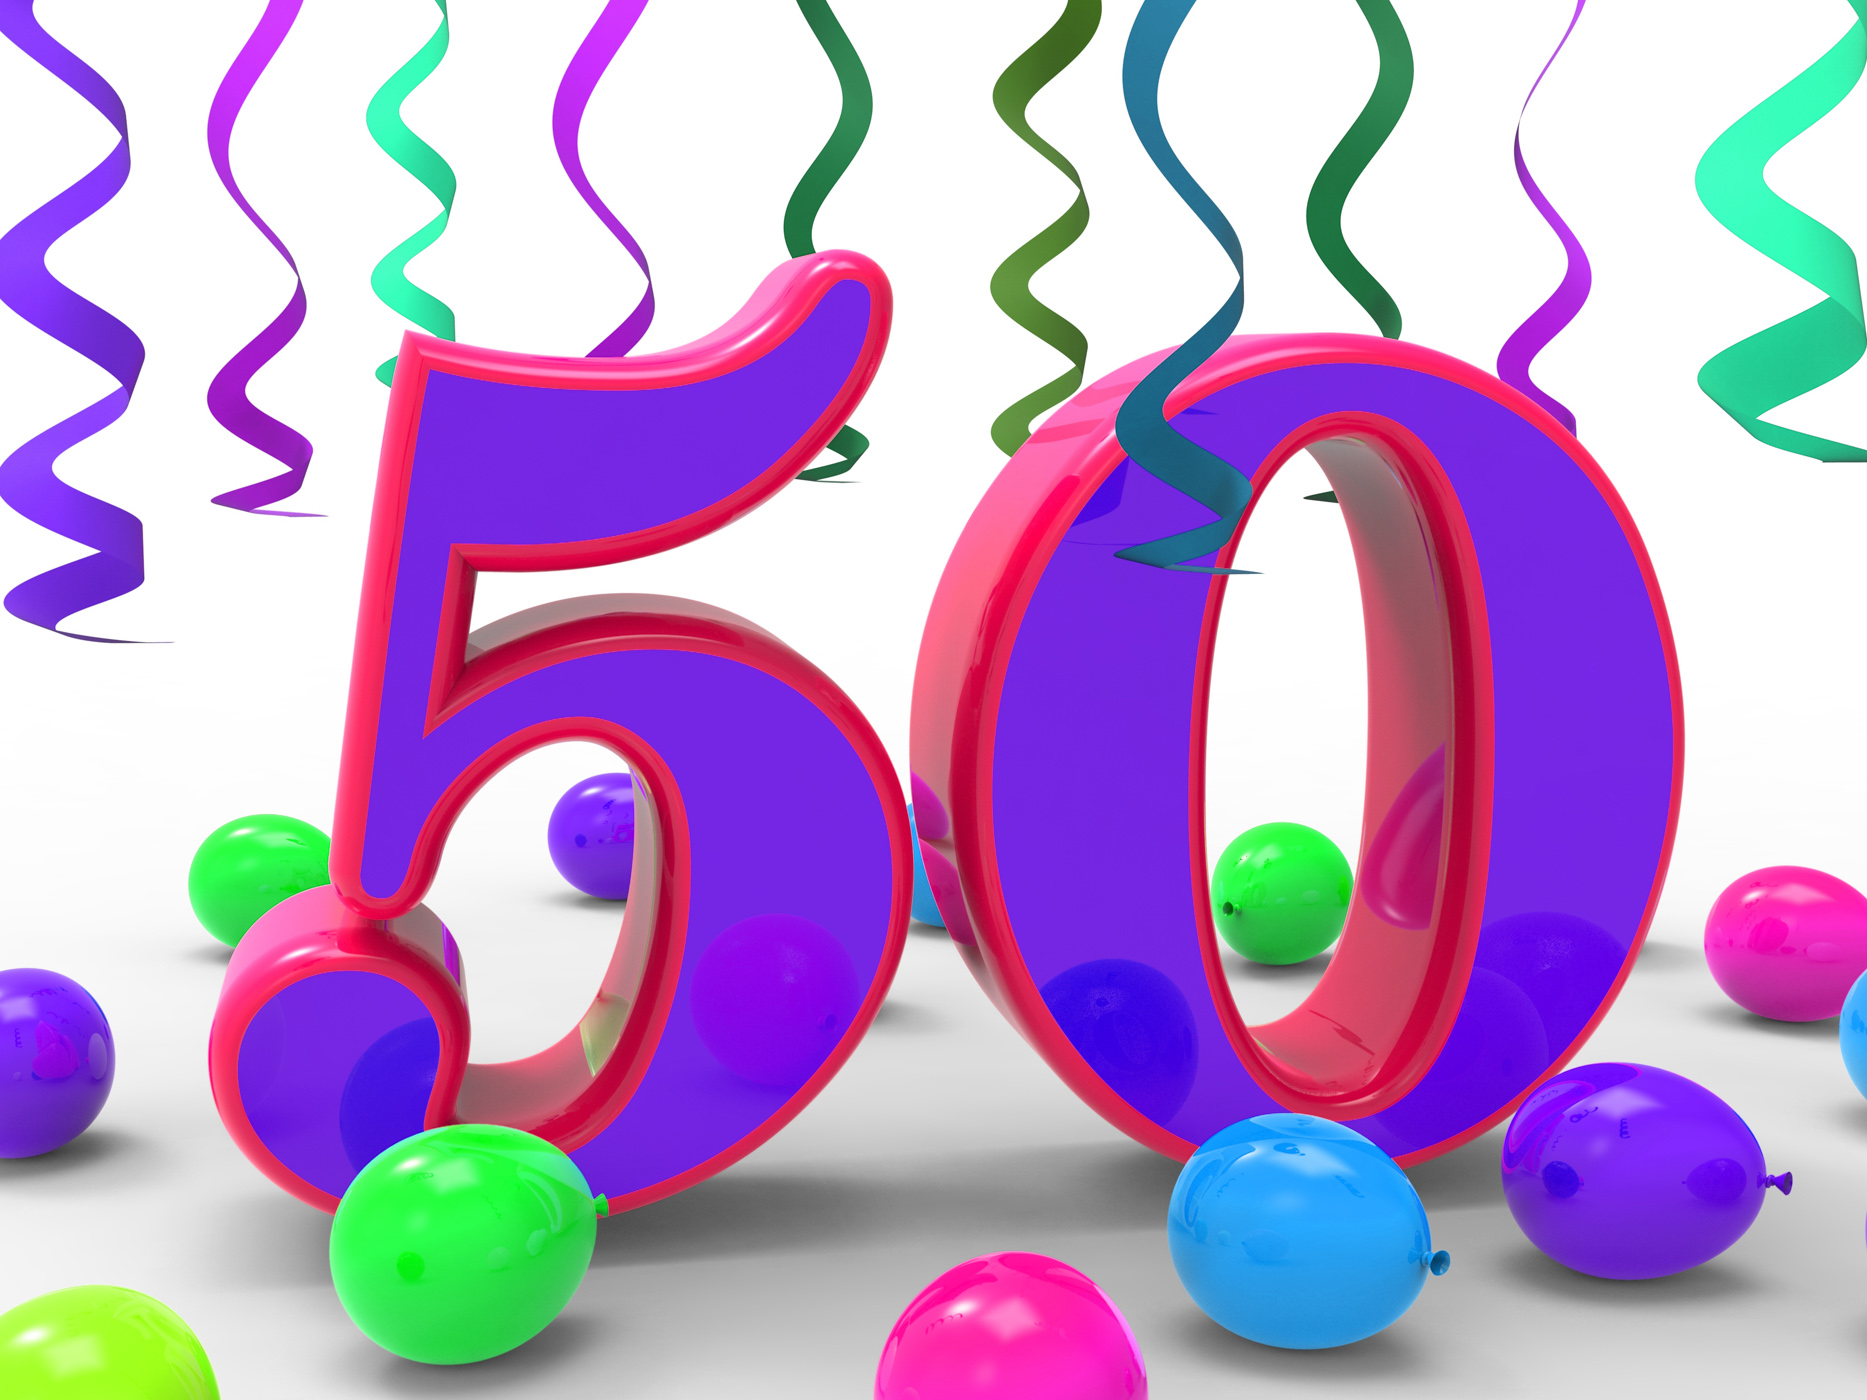 Number fifty party means colourful birthday party or decorated celebra photo